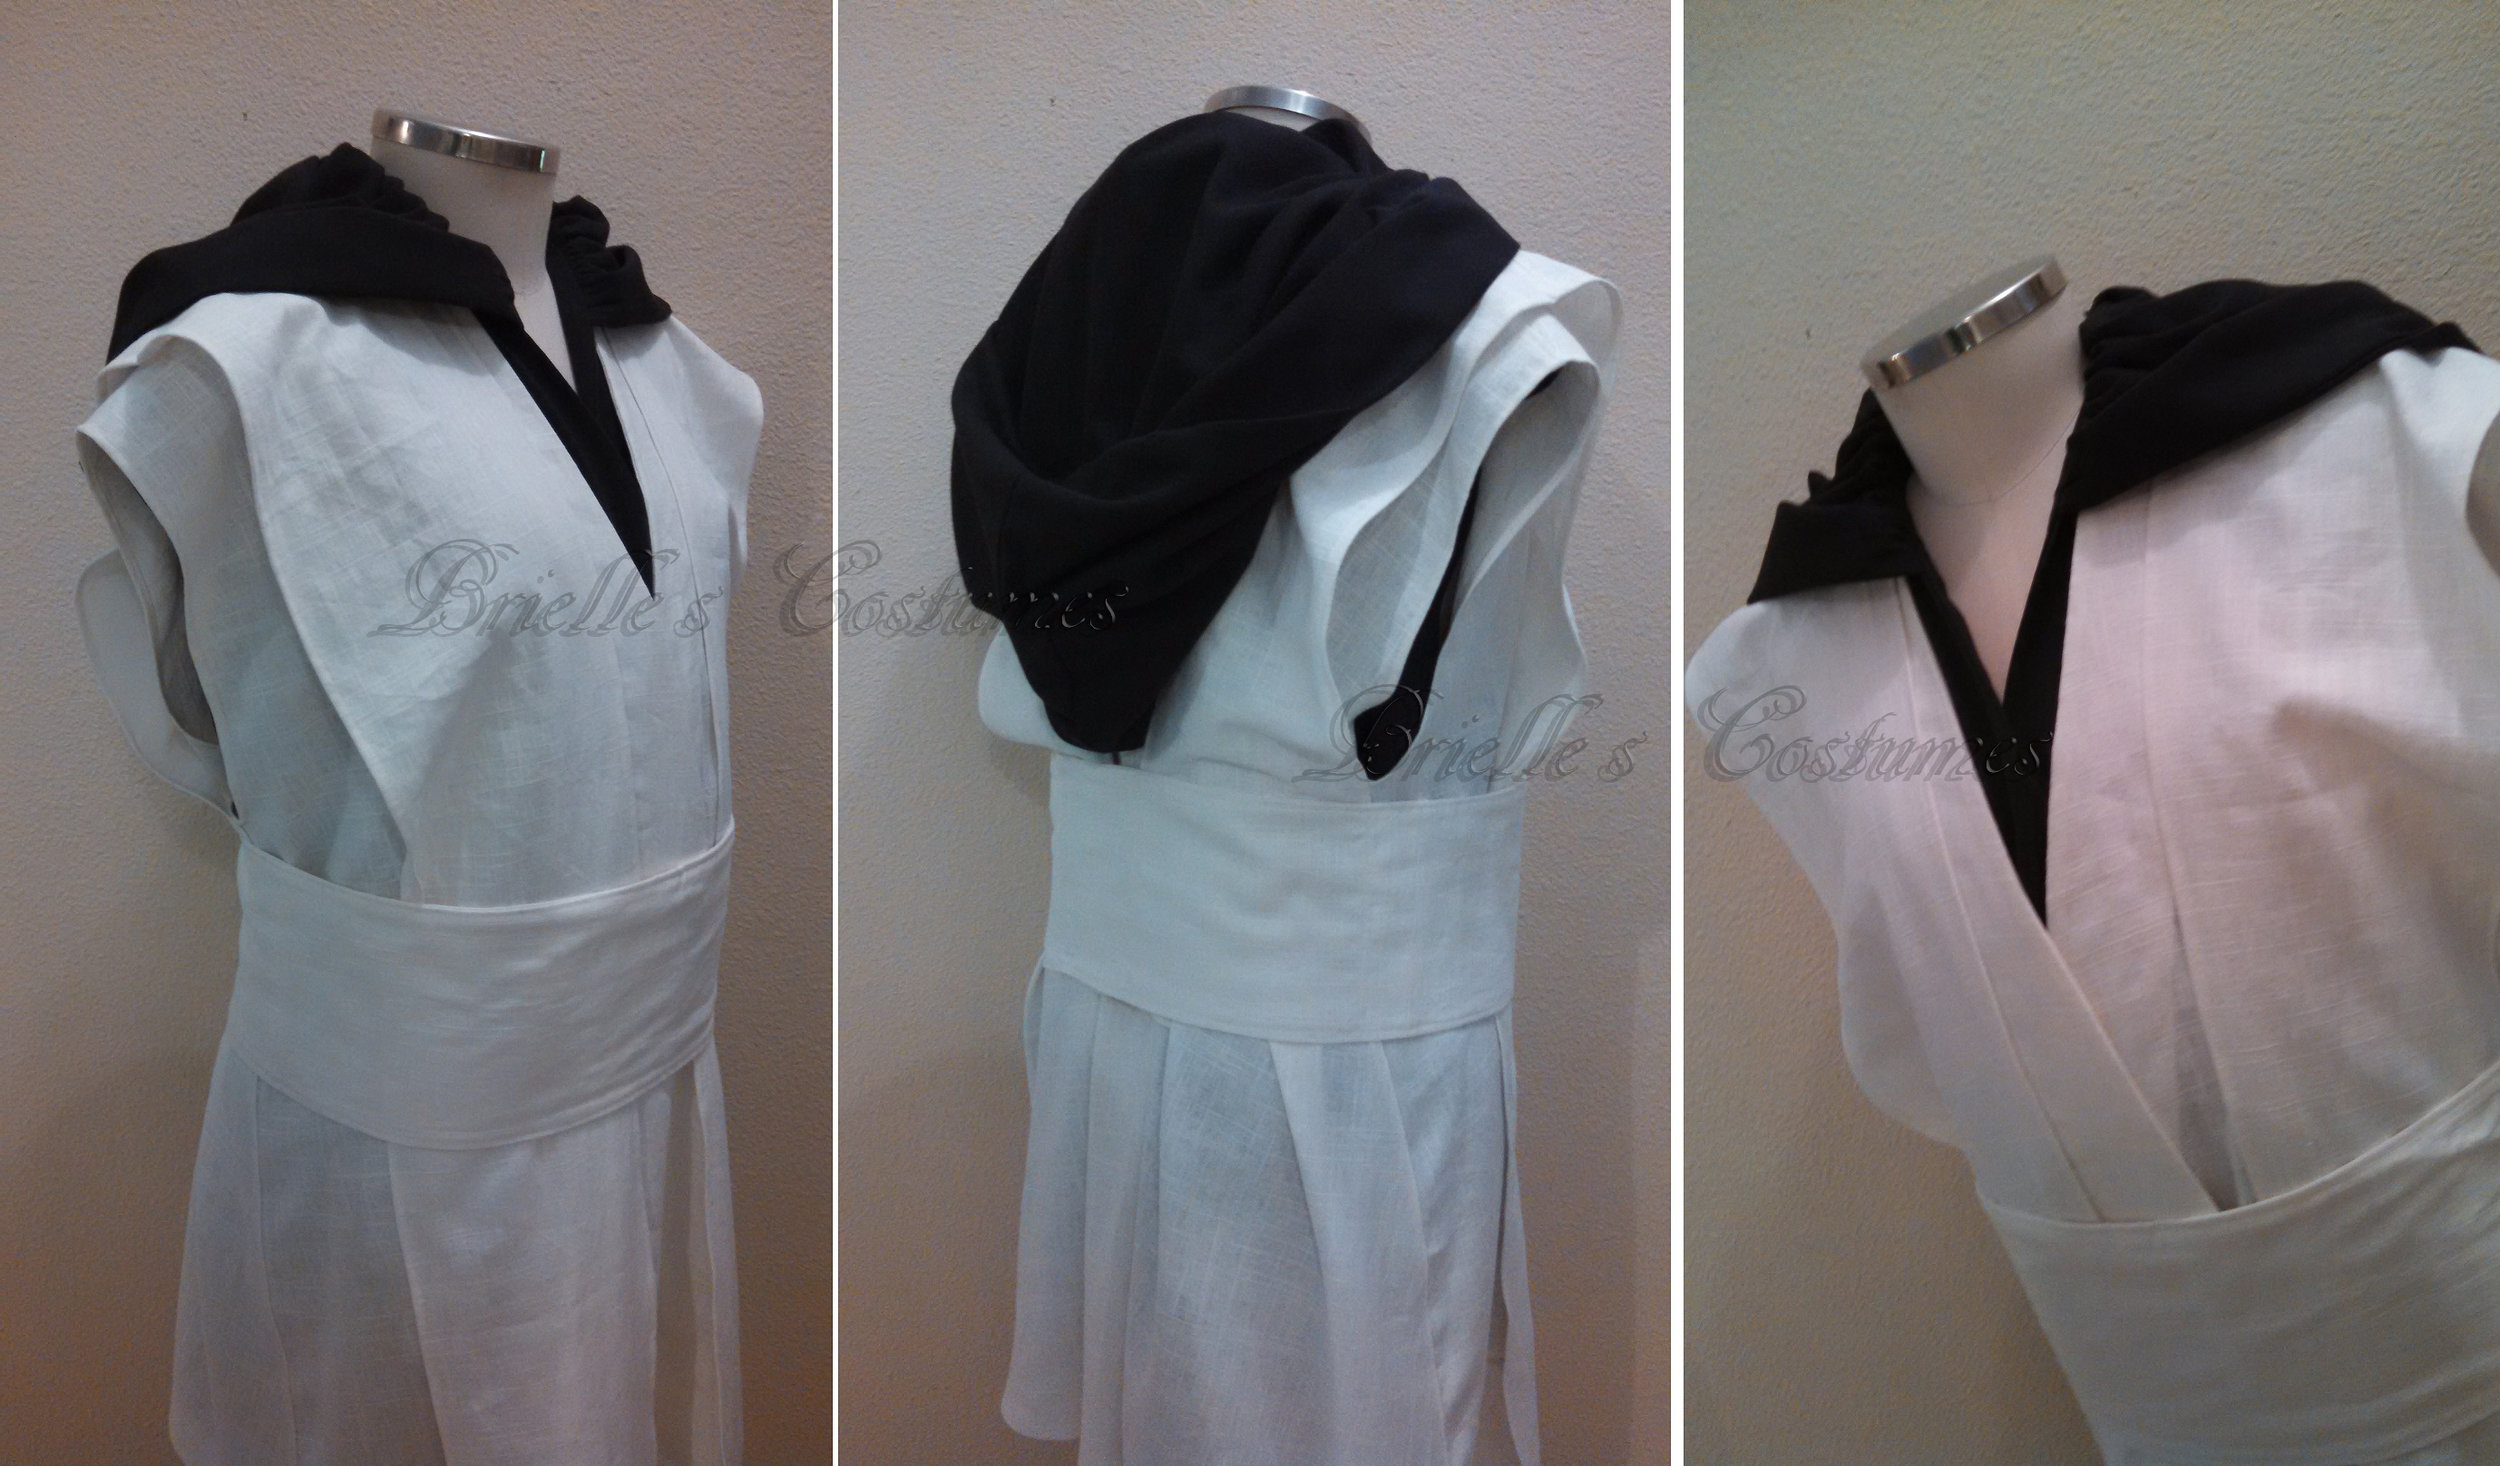 This costume was also unique in that my customer was looking for a black and white sleeveless Jedi Look. We also add a hood for layer options.